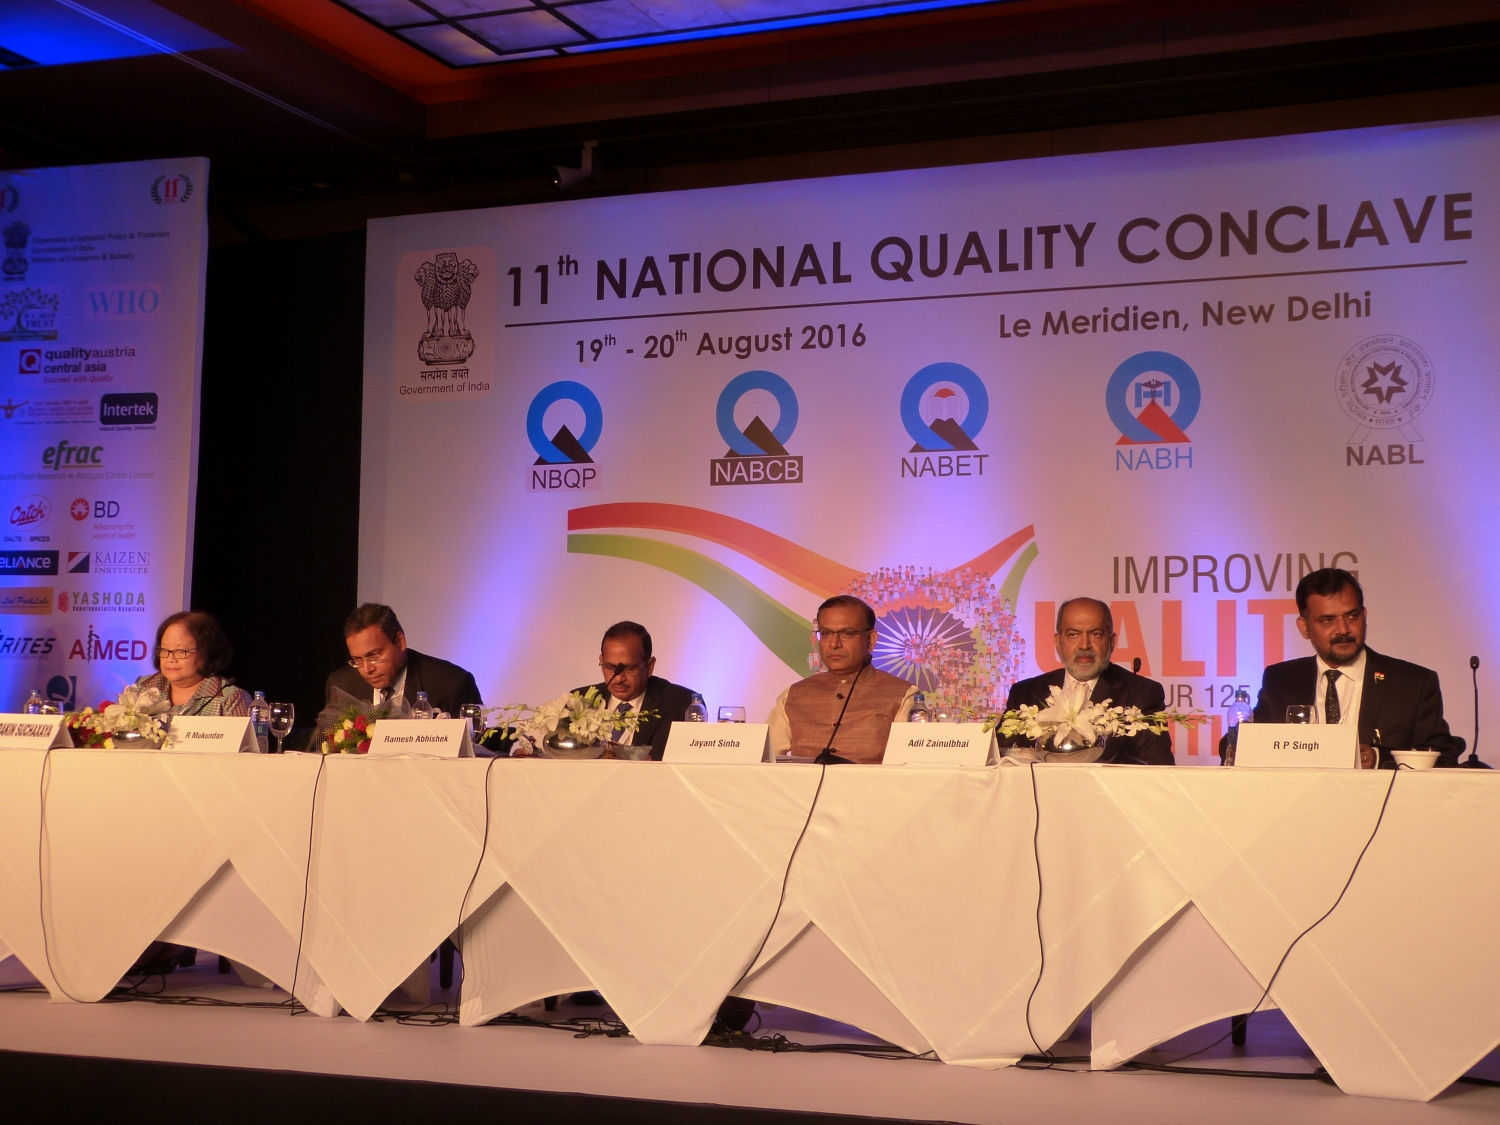 Da esq. para a dir.: Dr. Prakin Suchaxaya - Regional Adviser for Nursing and Midwifer, WHO regional office for South-East Asia (SEARO) ; R. Mukundan - Chairman of the NBQP ; Ramesh Abhishek - Secretary of the DIPP ; Shrí Jayant Sinha - Hon'ble MoS, Civil Aviation ; Adil Zainubhai - Chairman of the Quality Council of India ; Dr. Ravi P. Singh - Secretary General of the Quality Council of India